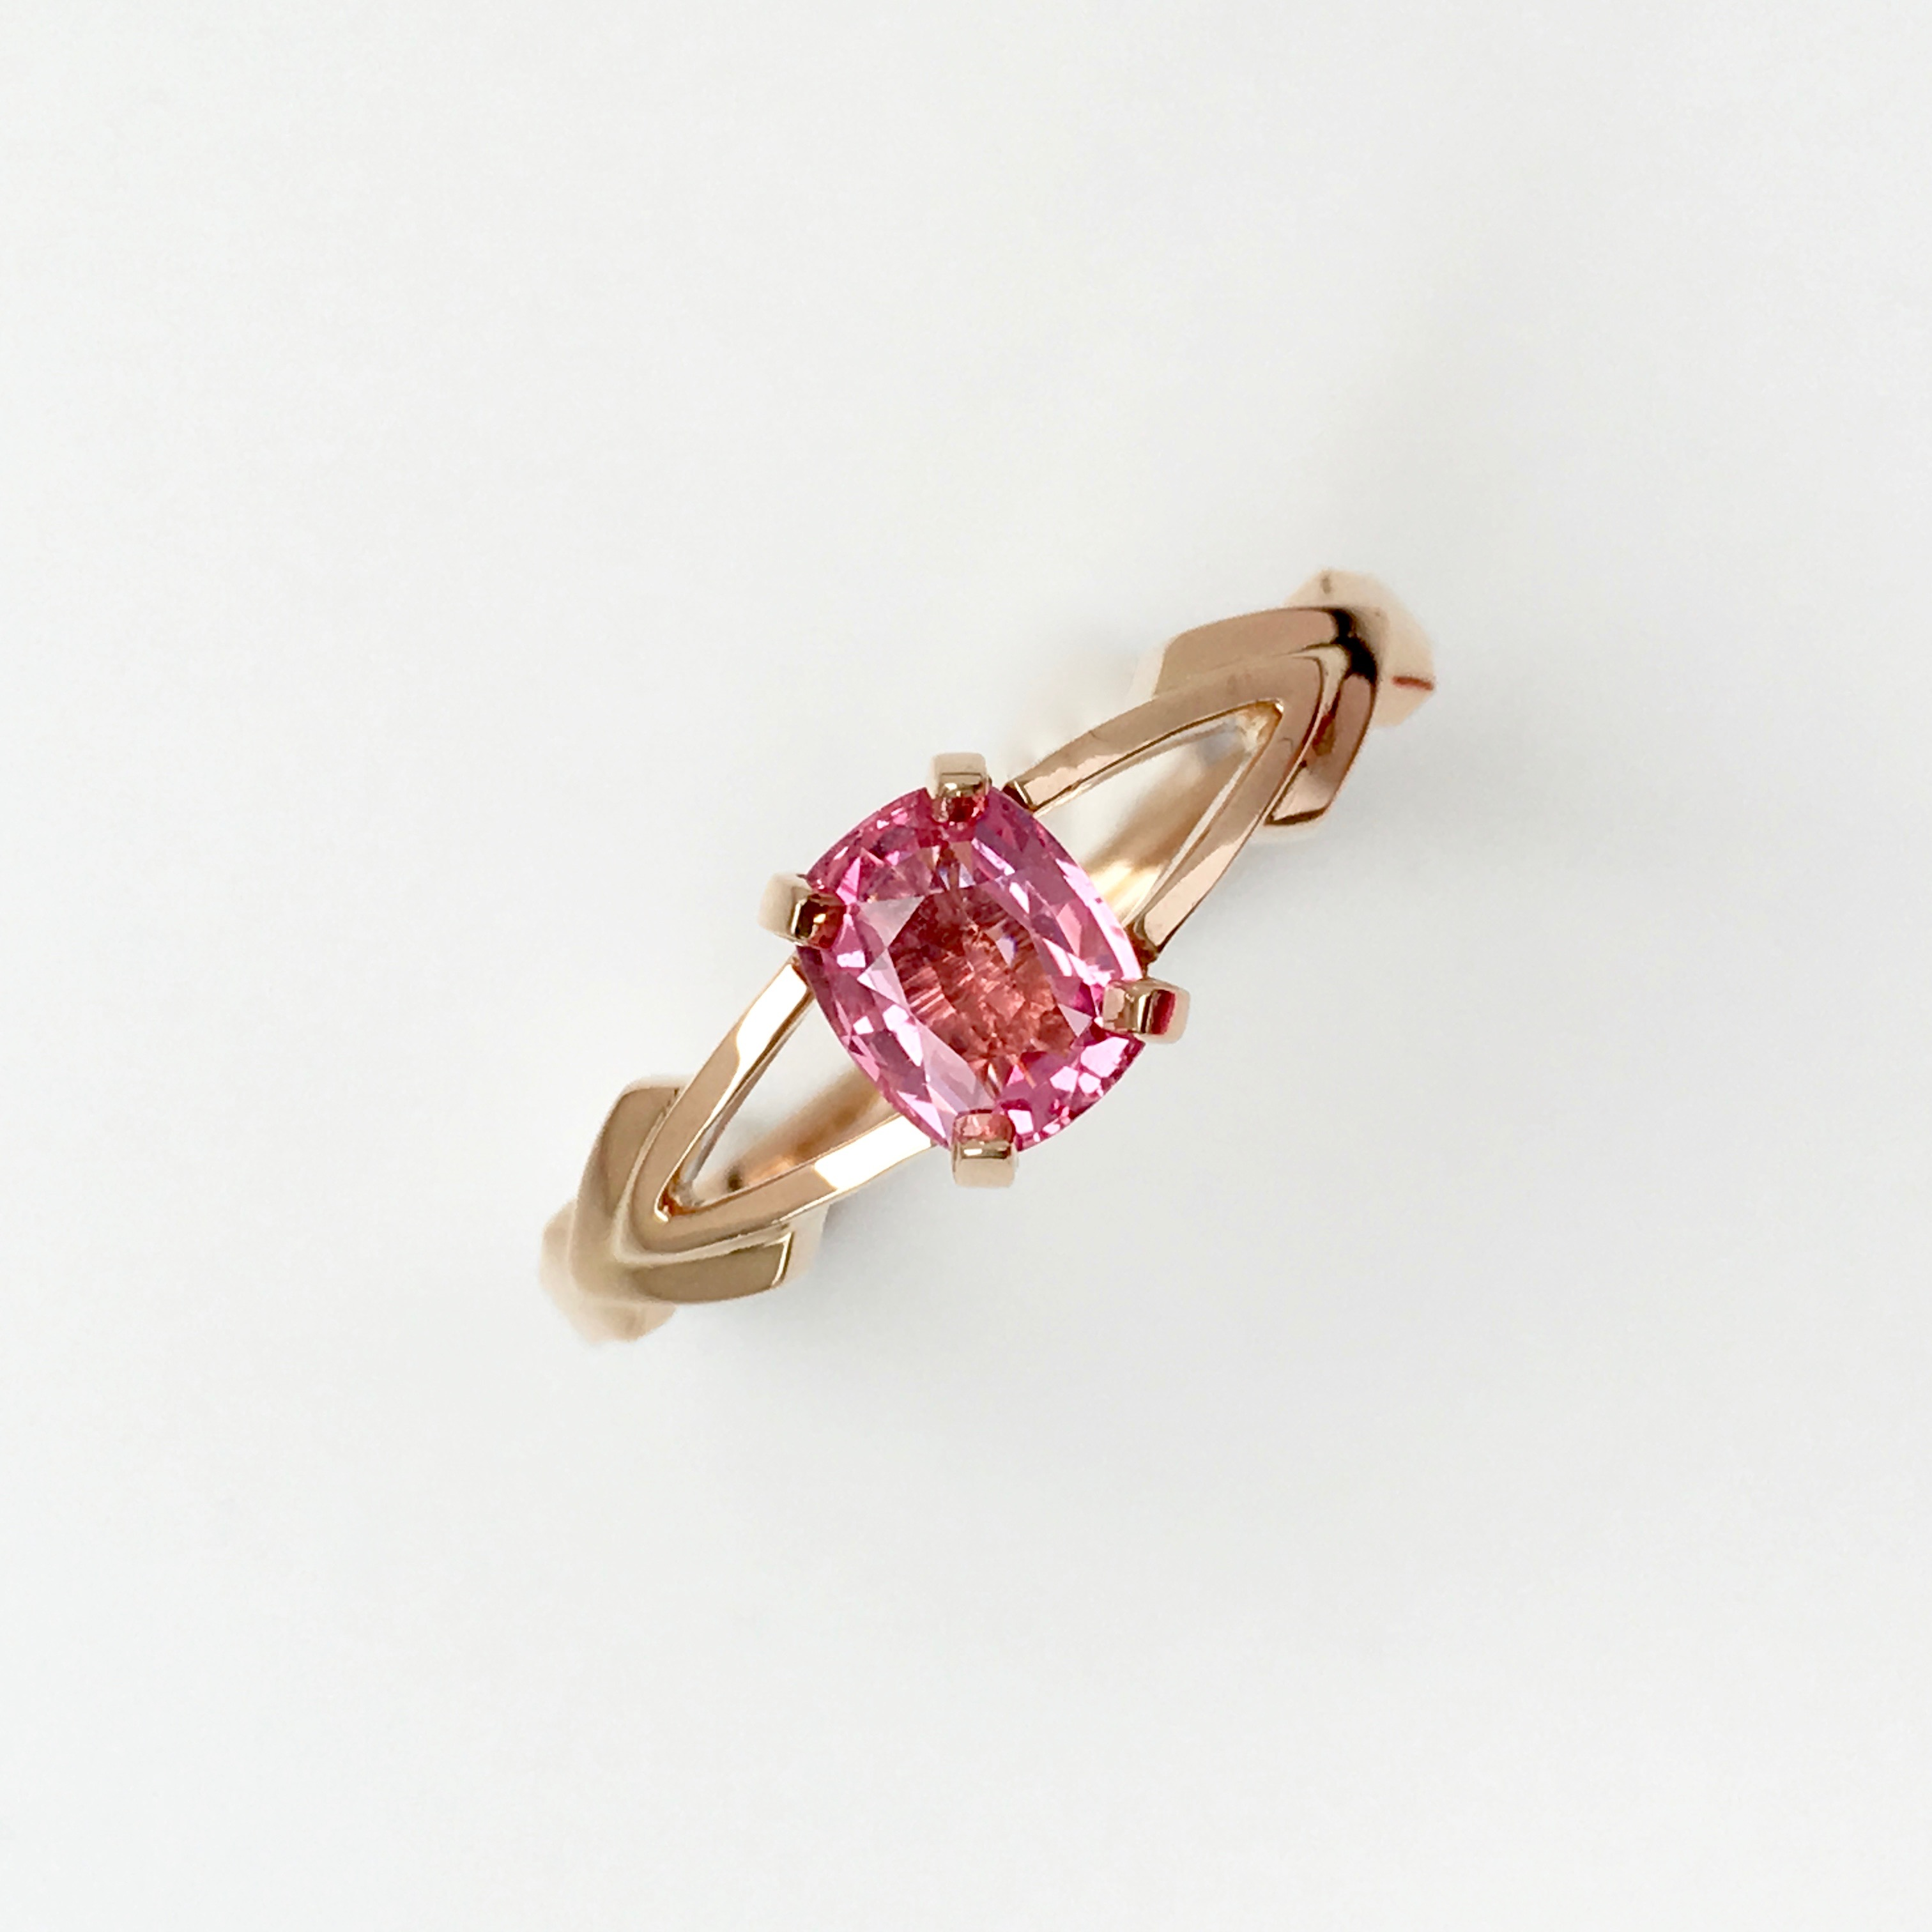 Engagement and Wedding band set, 750 Rose Gold and Pink Sapphire